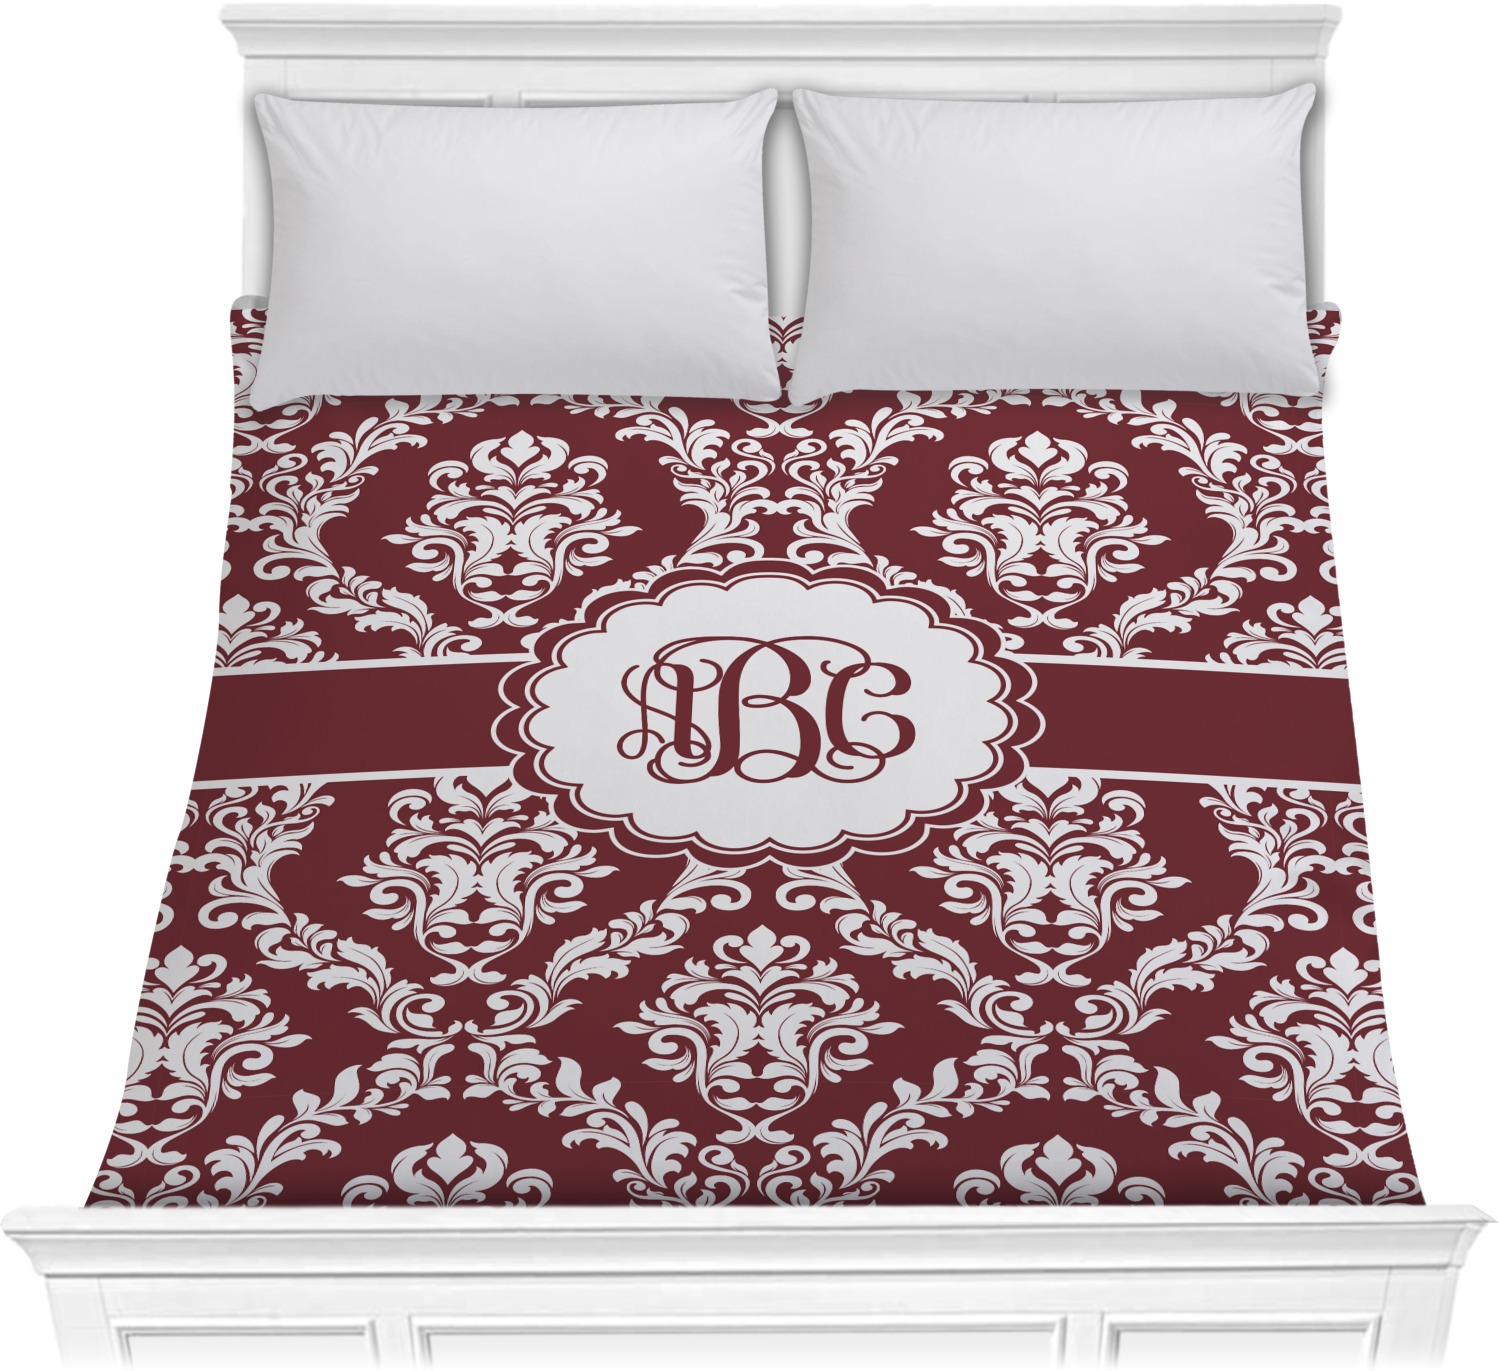 Maroon Amp White Comforter Full Queen Personalized